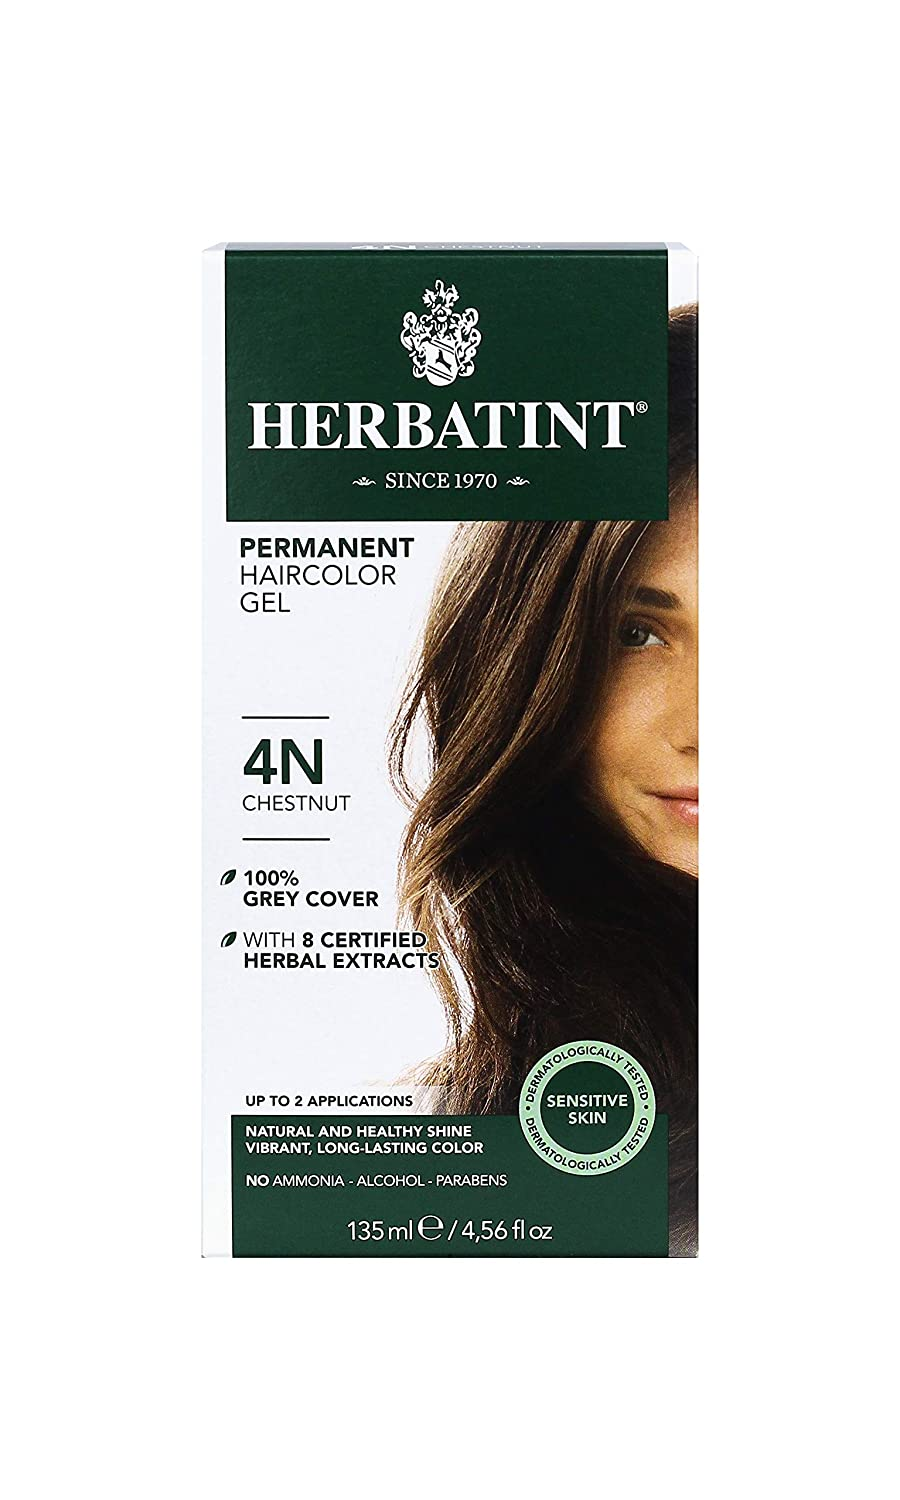 Herbatint Permanent Herbal Haircolor Gel, Chestnut, 4.56 Ounce